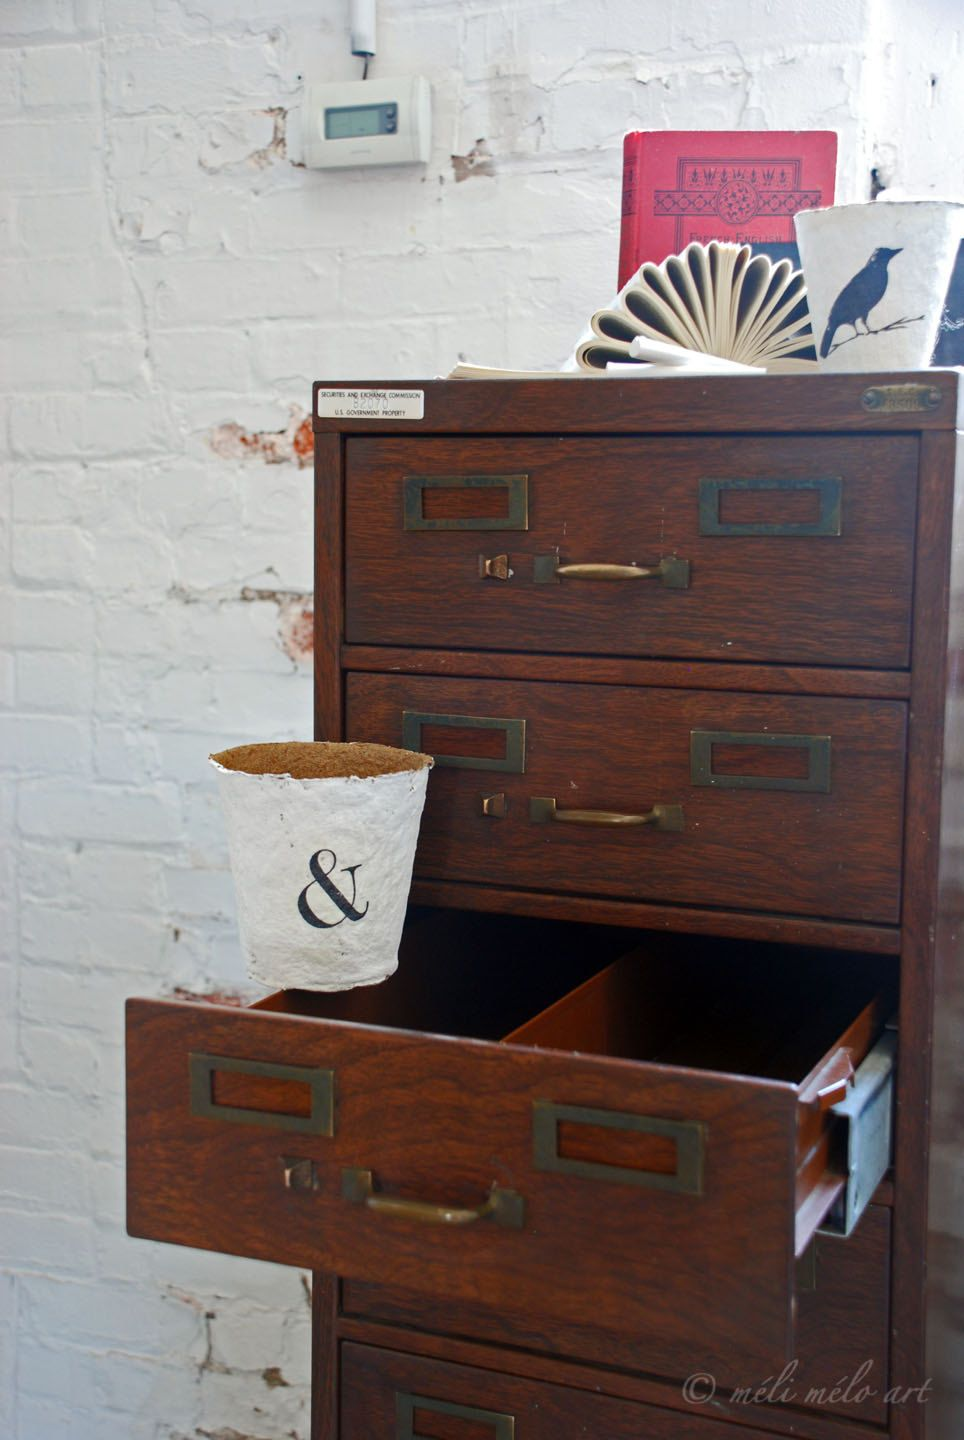 Index Card File Cabinet Metal Wood Grain 10 Drawers Price Reduced 225 00 Usd By Edis